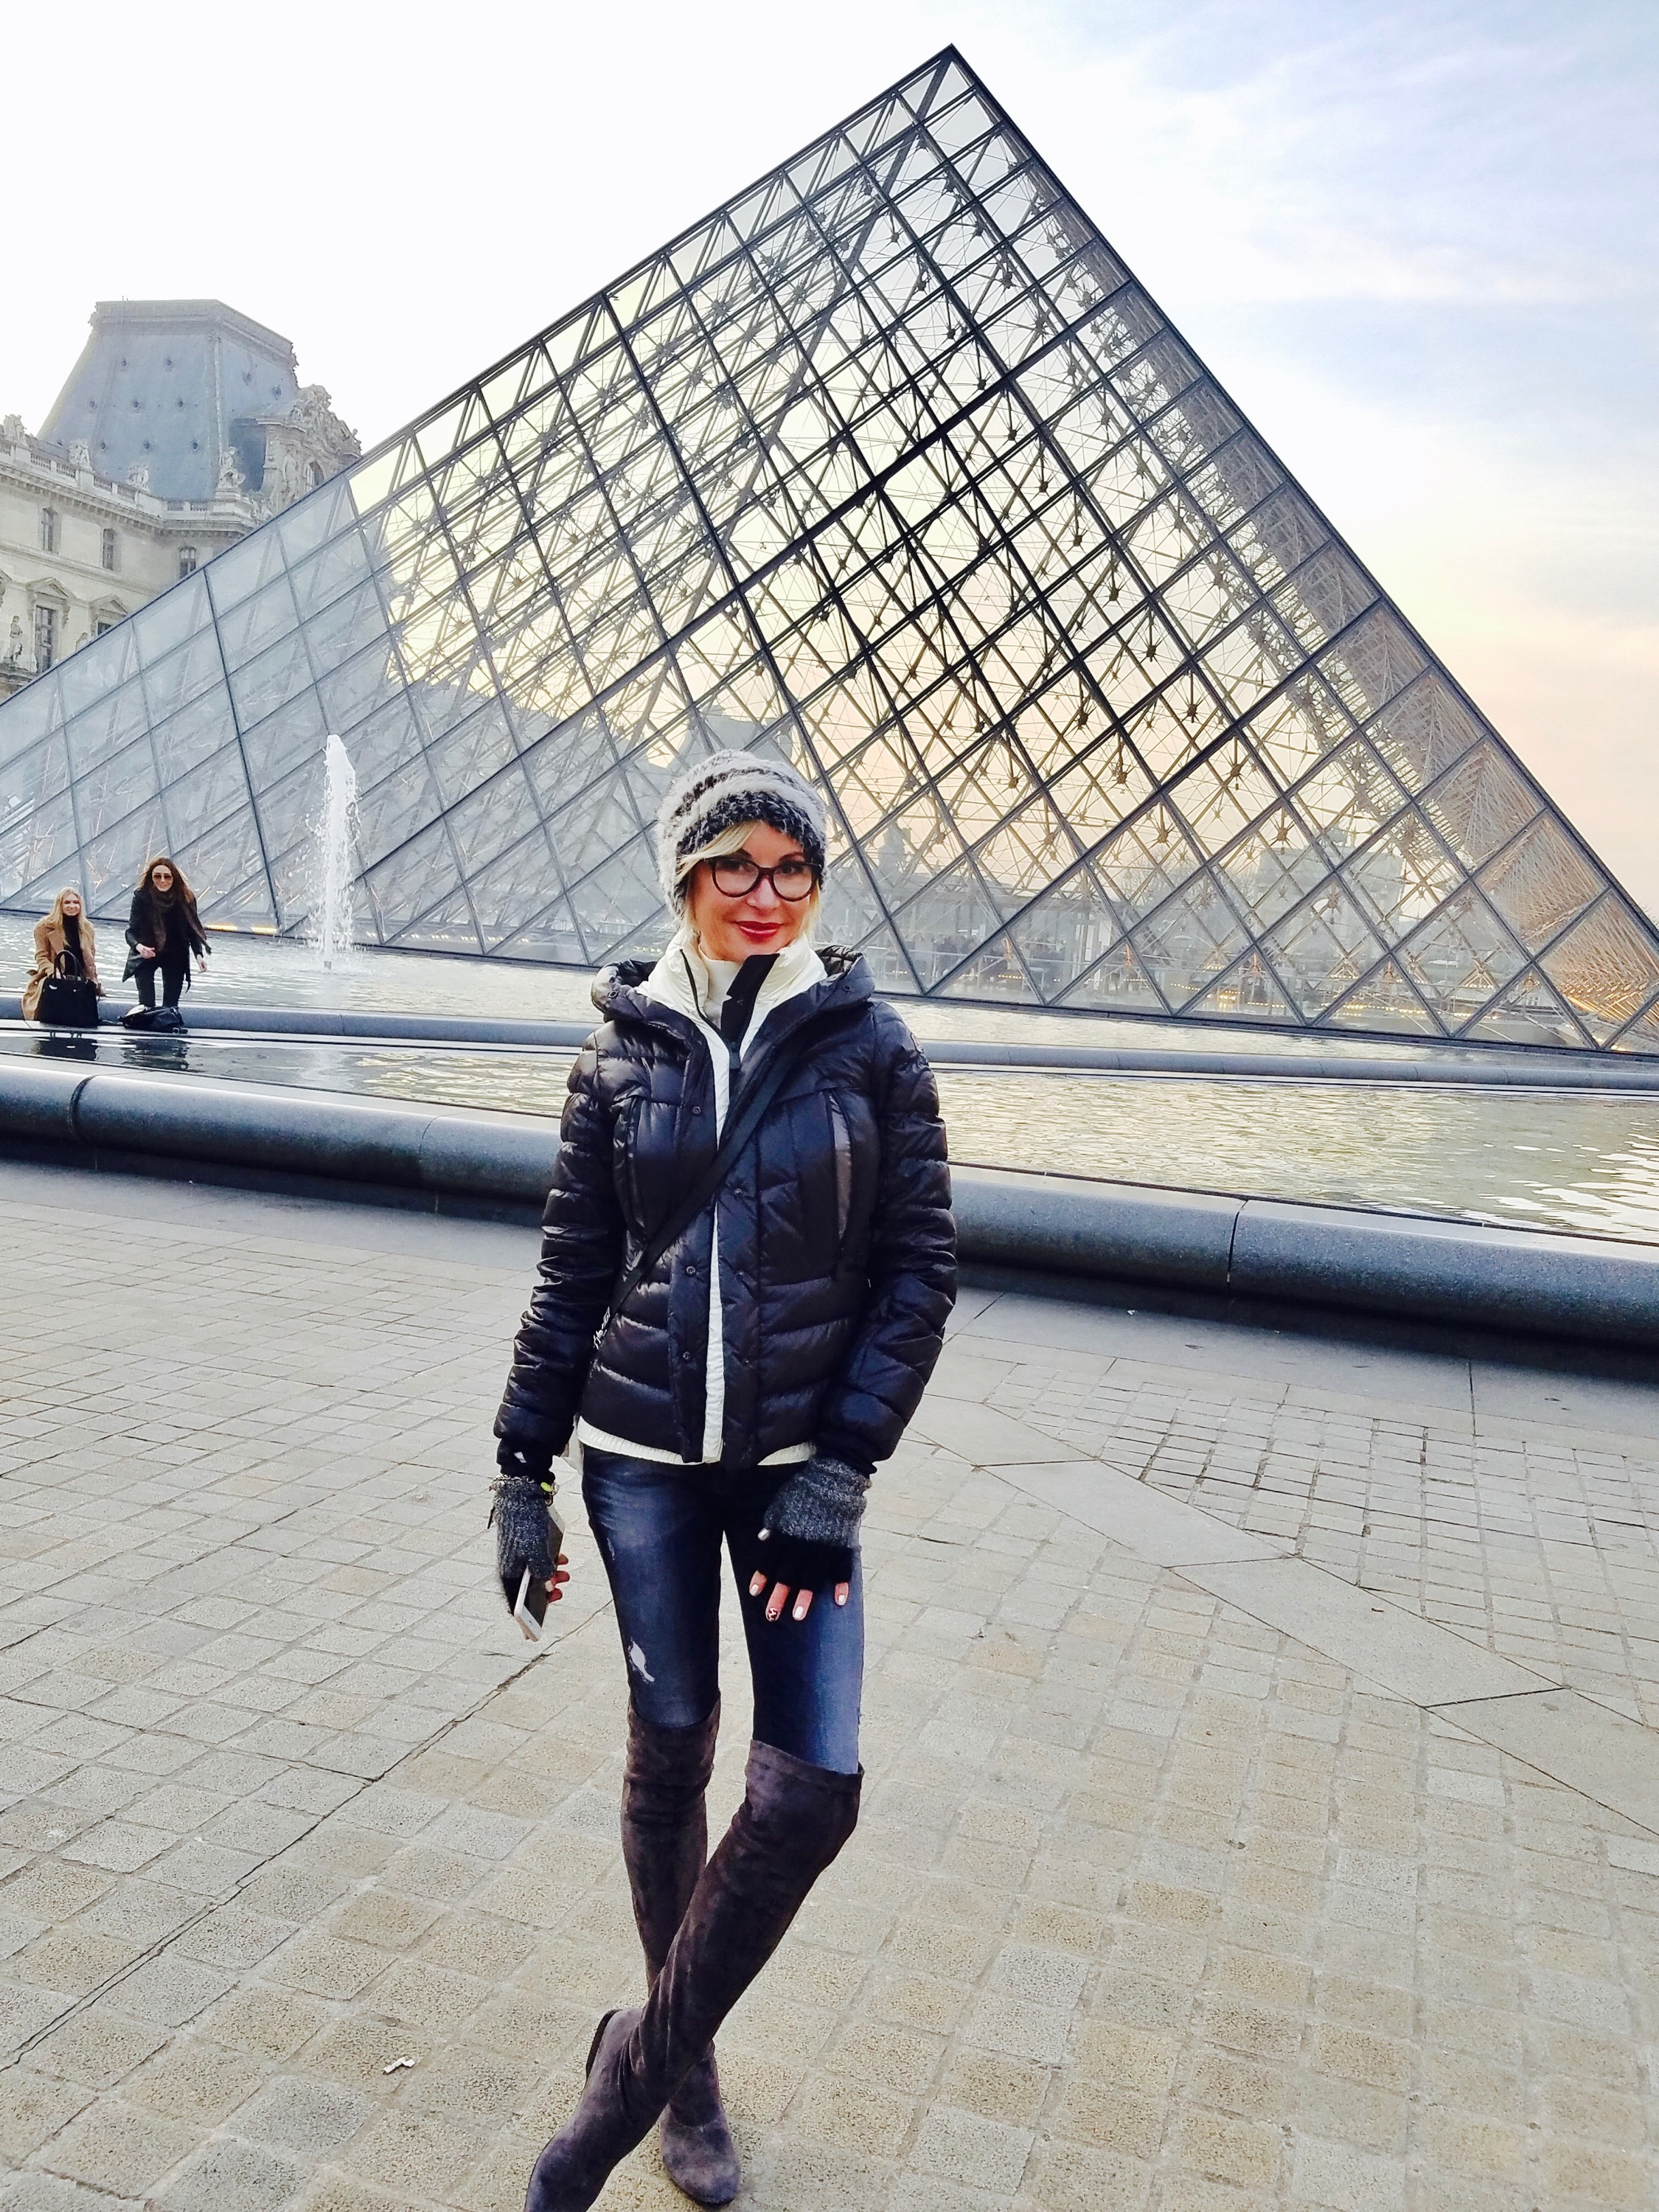 All bundled up in front of the PEI PYRAMIDE in the Louvres (outside)